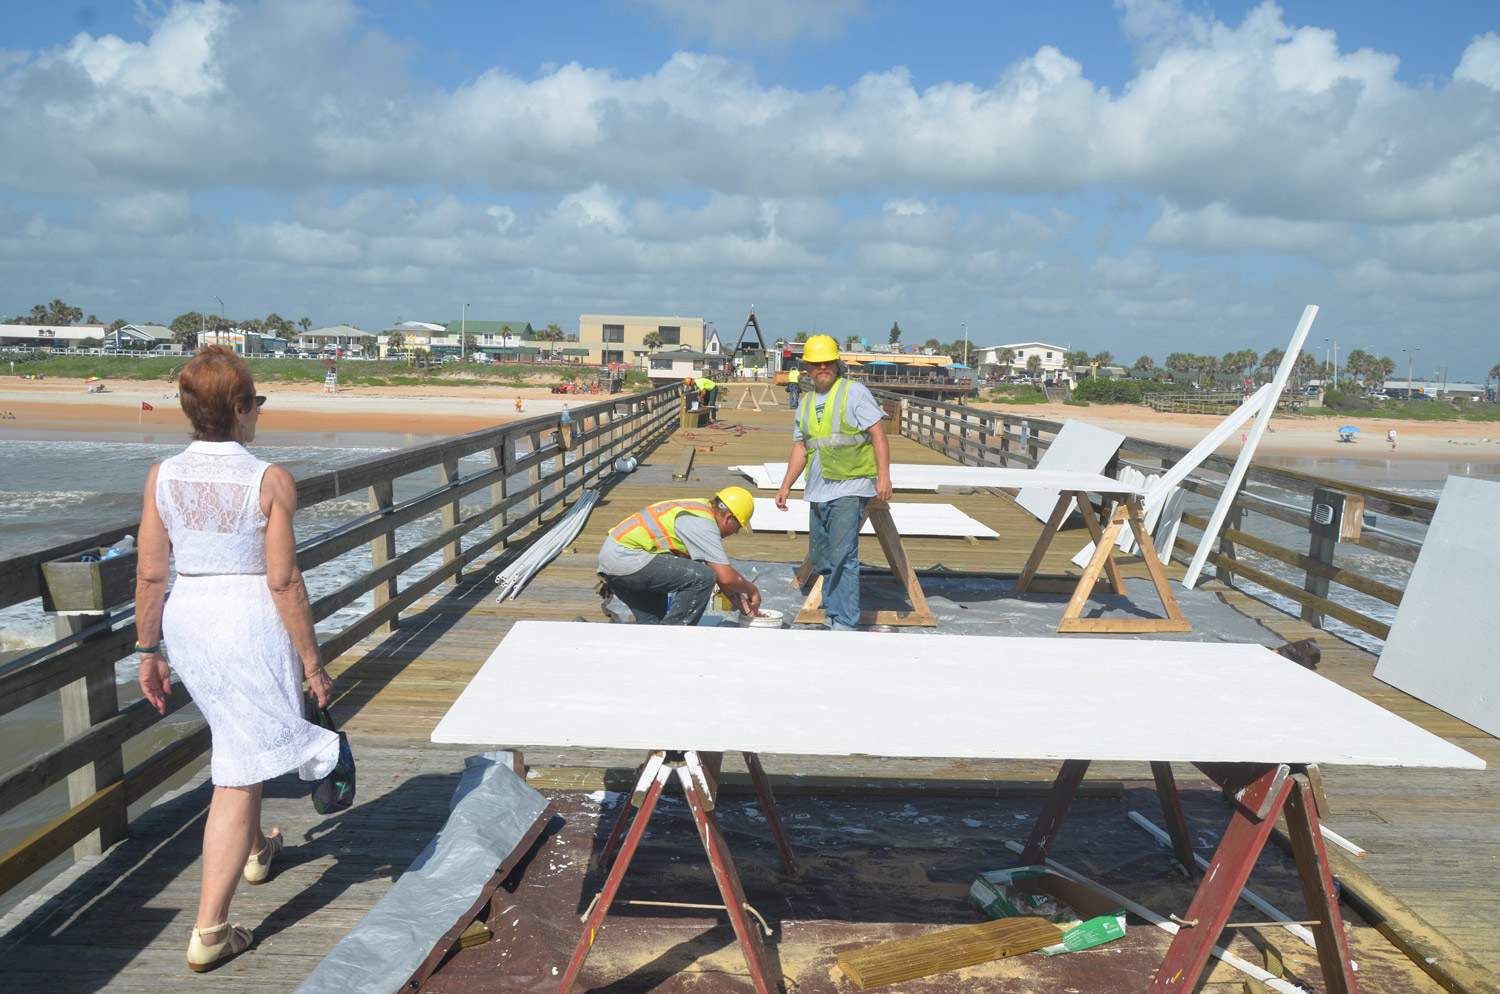 Flagler Beach City Commission Chair Jane Mealy walked to the edge of the the pier for the first time since Hurricane Matthew as workers put on the finishing touches. Standing in the middle was David Marine, one of the workers with the contractor, who happens to live a block and a half away from the pier. Click on the image for larger view. (© FlaglerLive)